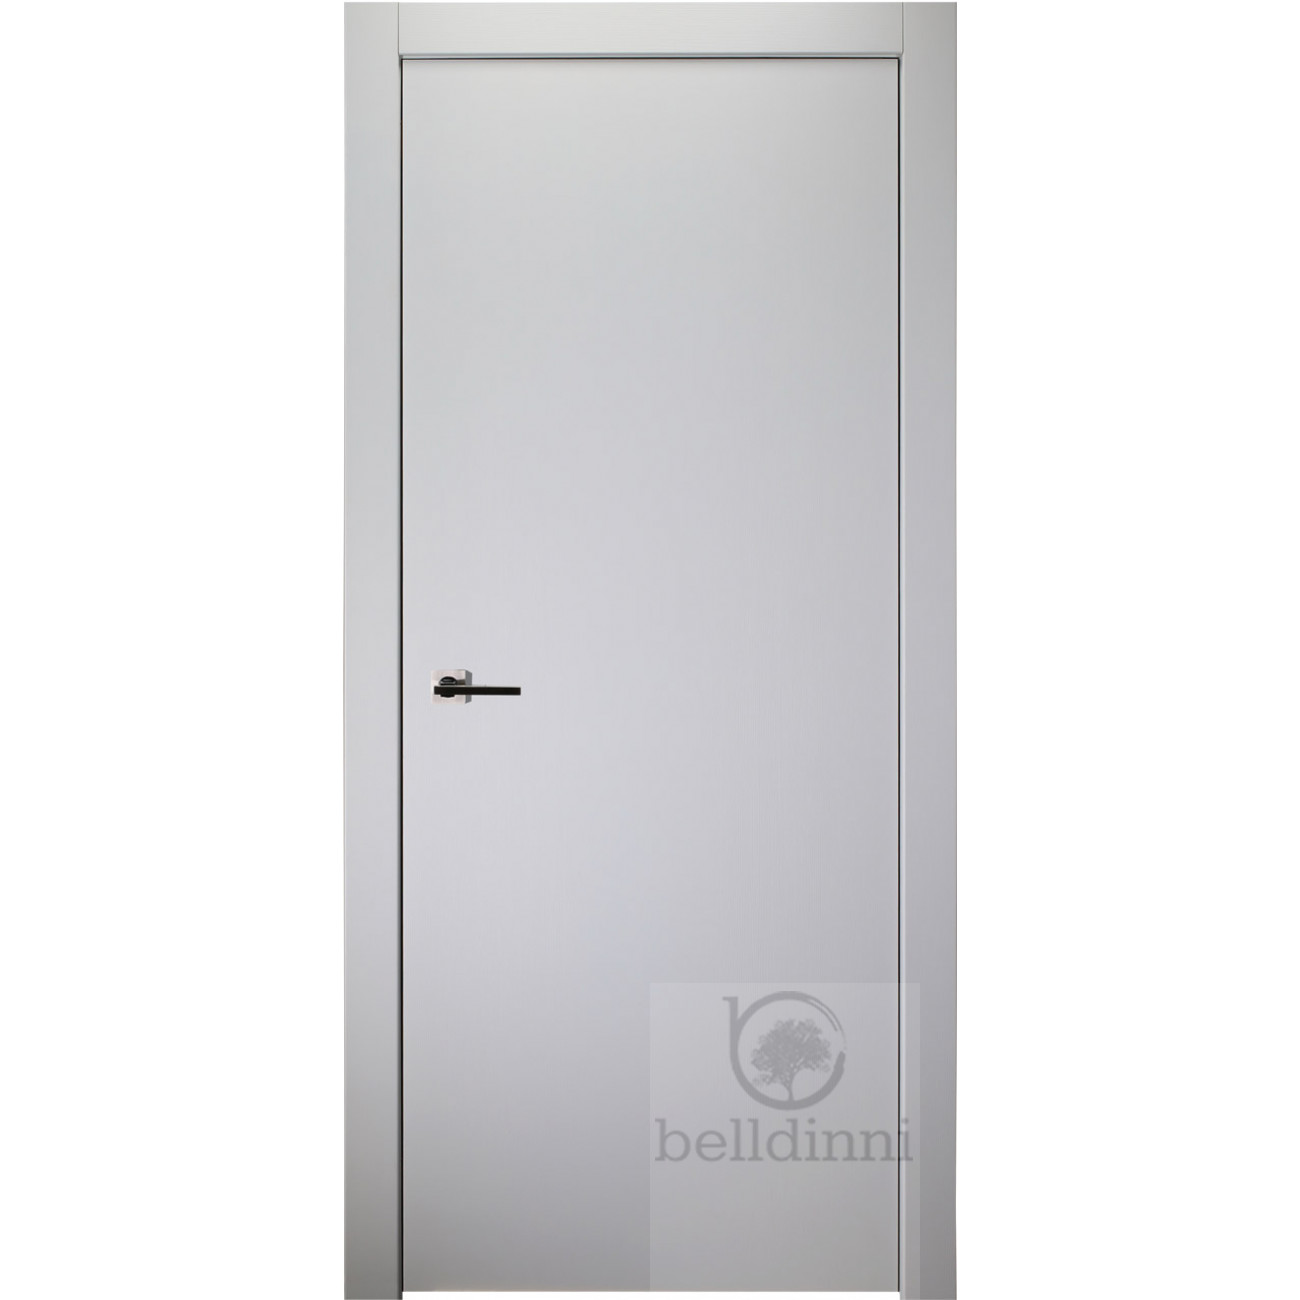 Palladio Bianco Noble Flush Interior Door Solid Core Polypropylene Finish Belldinni Belldinni